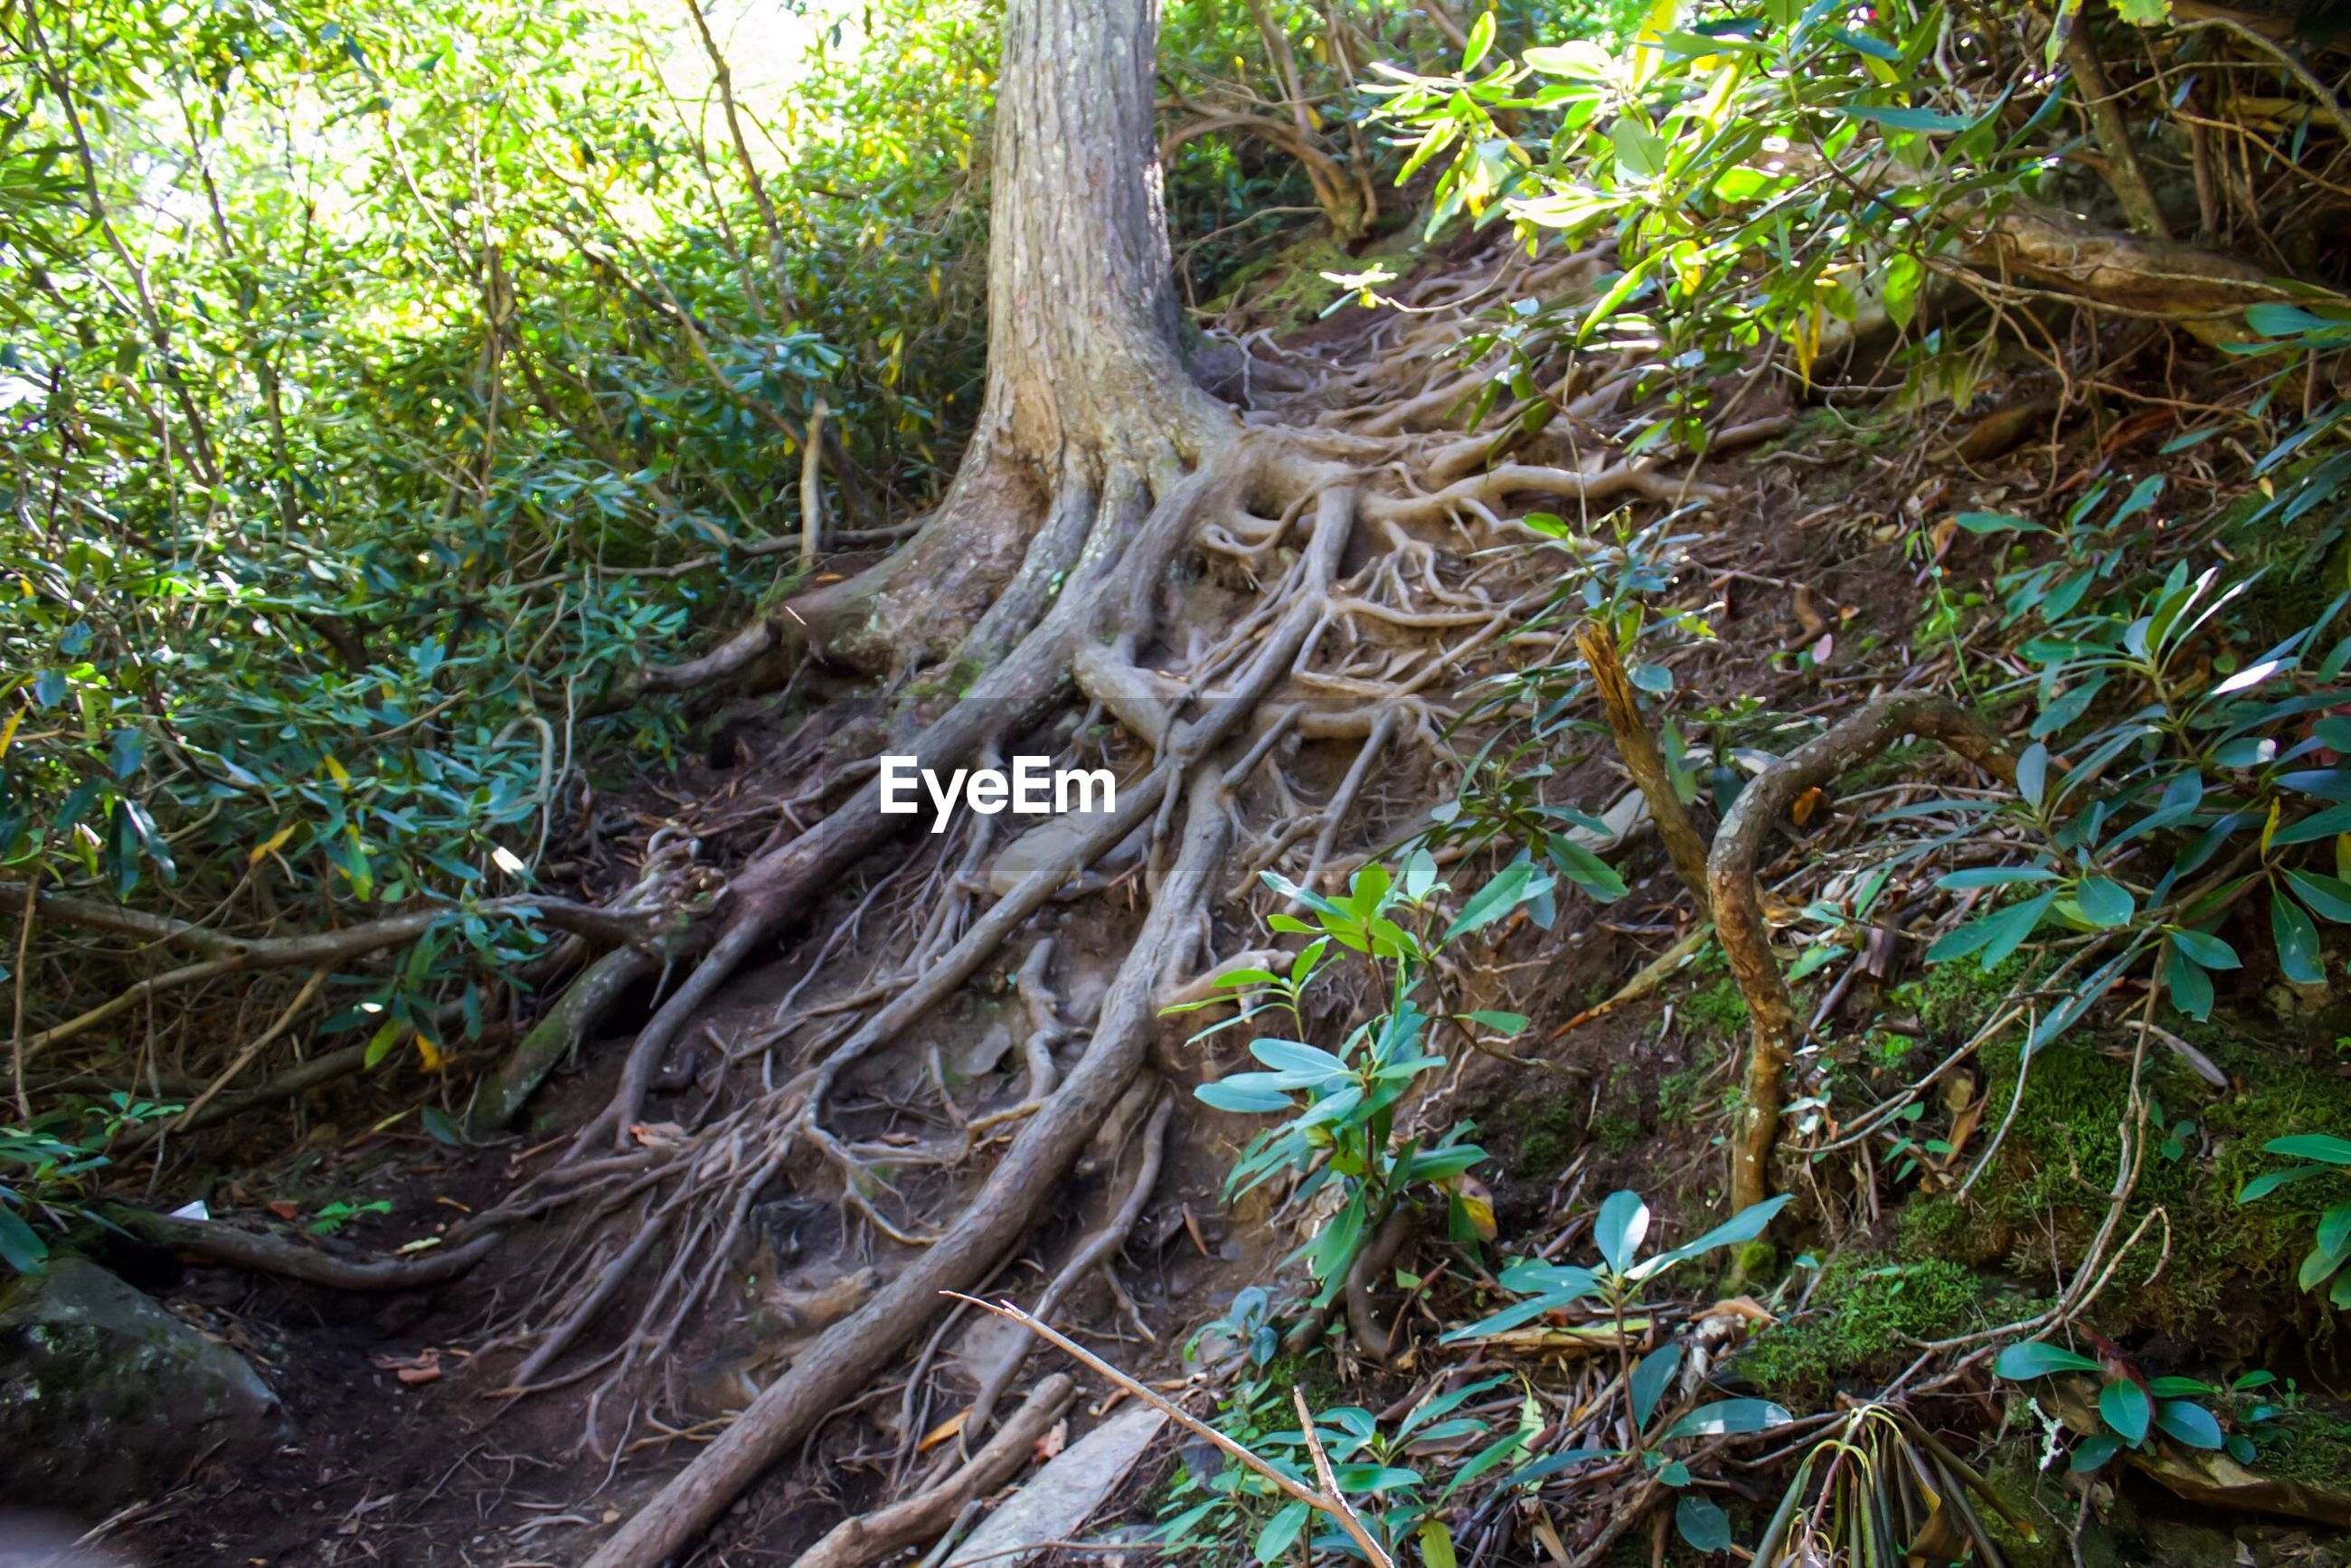 VIEW OF TREE ROOTS